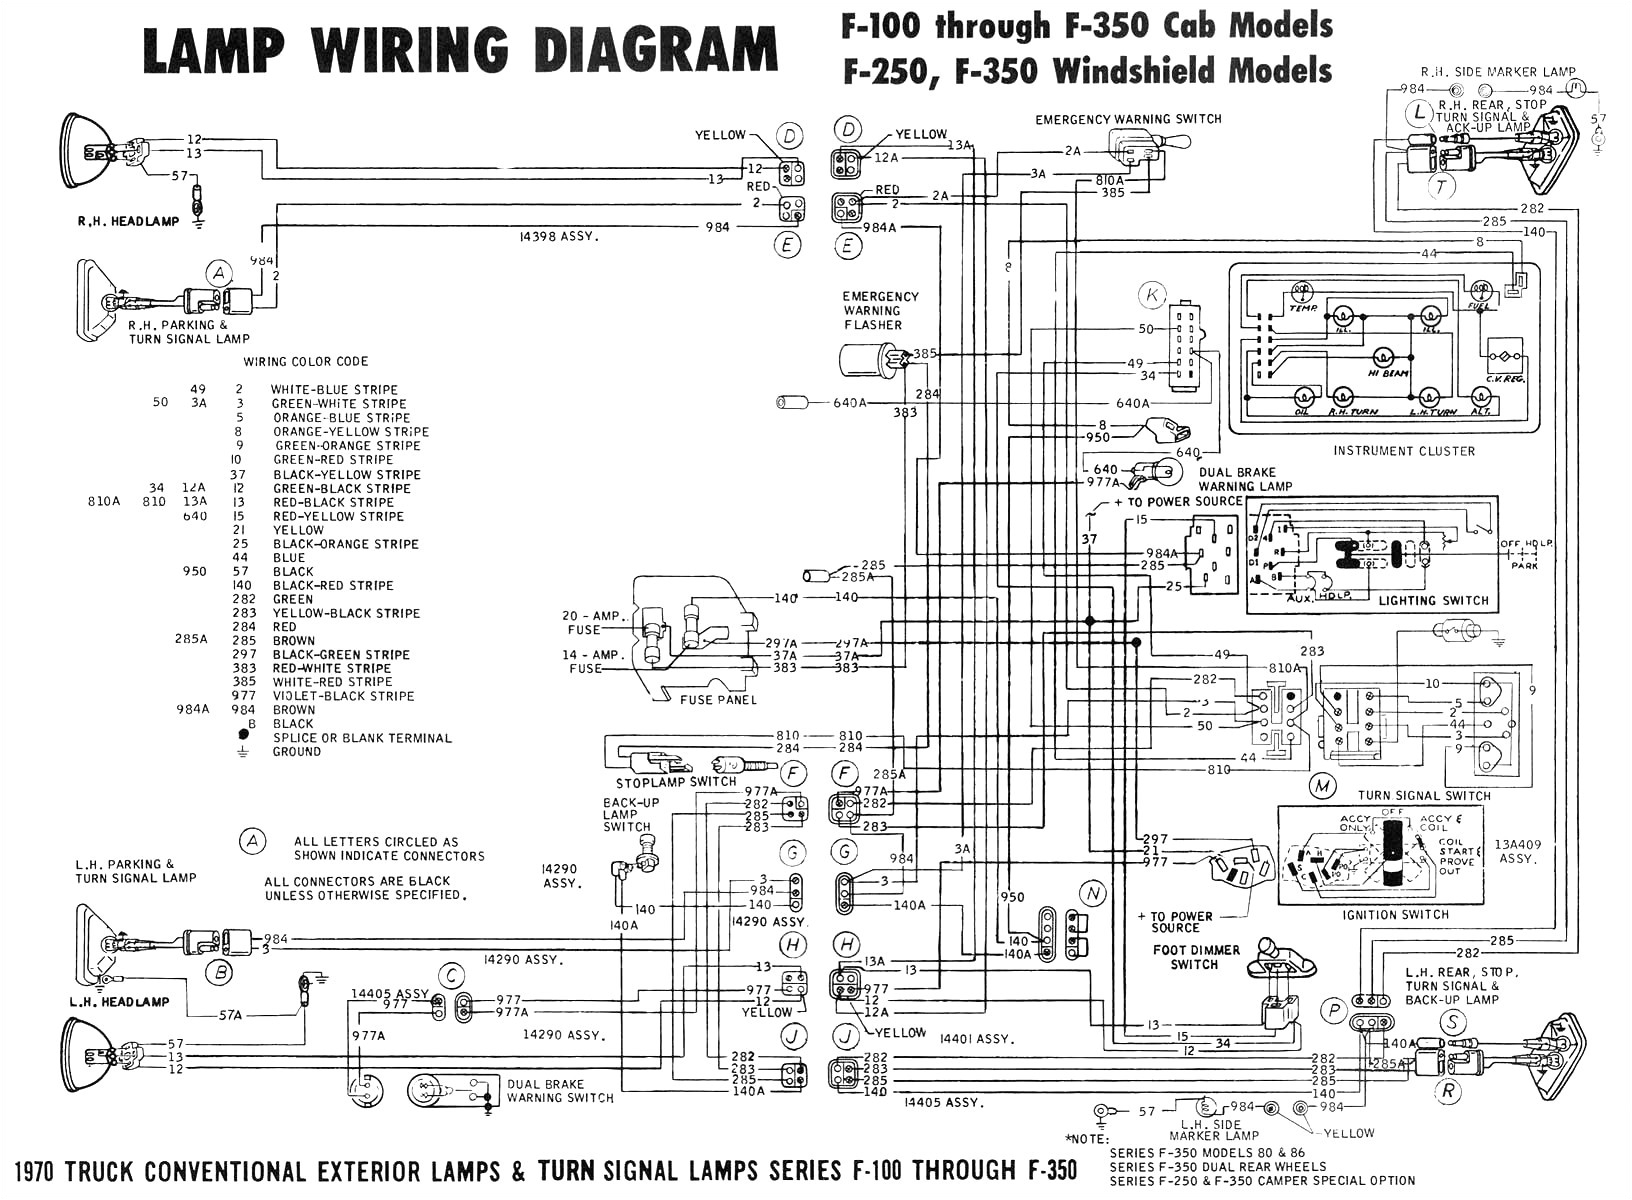 lgb train wiring diagrams wiring diagram schematic oshkosh mb amp gauge wiring diagram